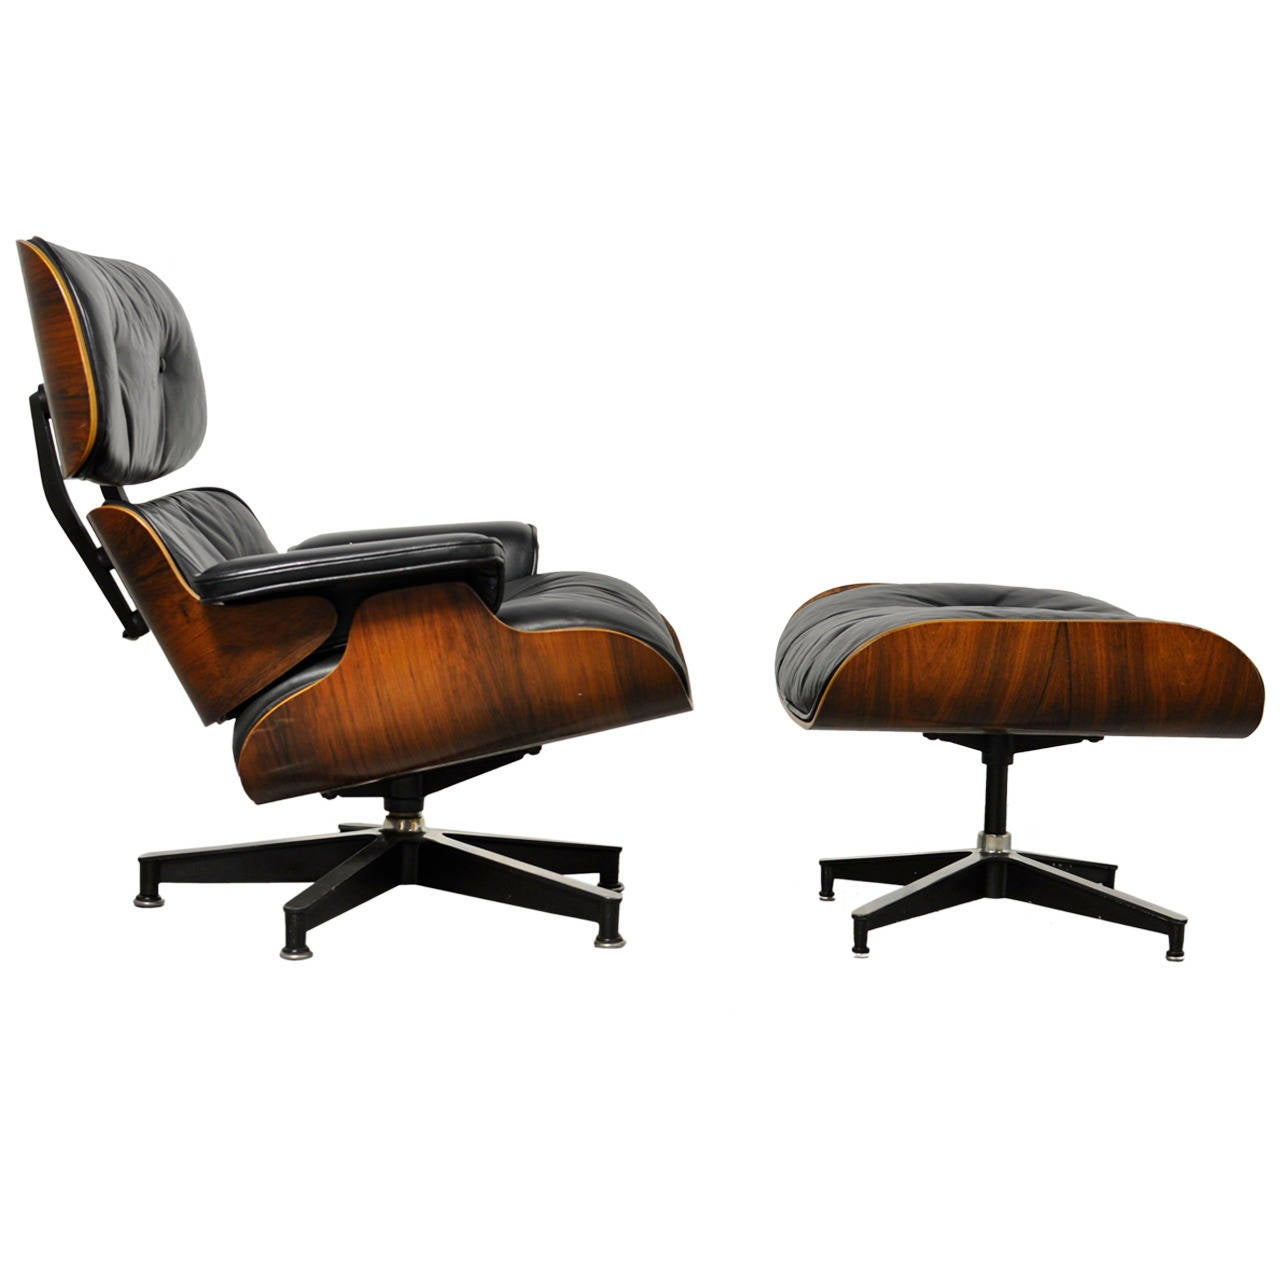 vintage rosewood lounge chair and ottoman by charles eames for sale at 1stdibs. Black Bedroom Furniture Sets. Home Design Ideas